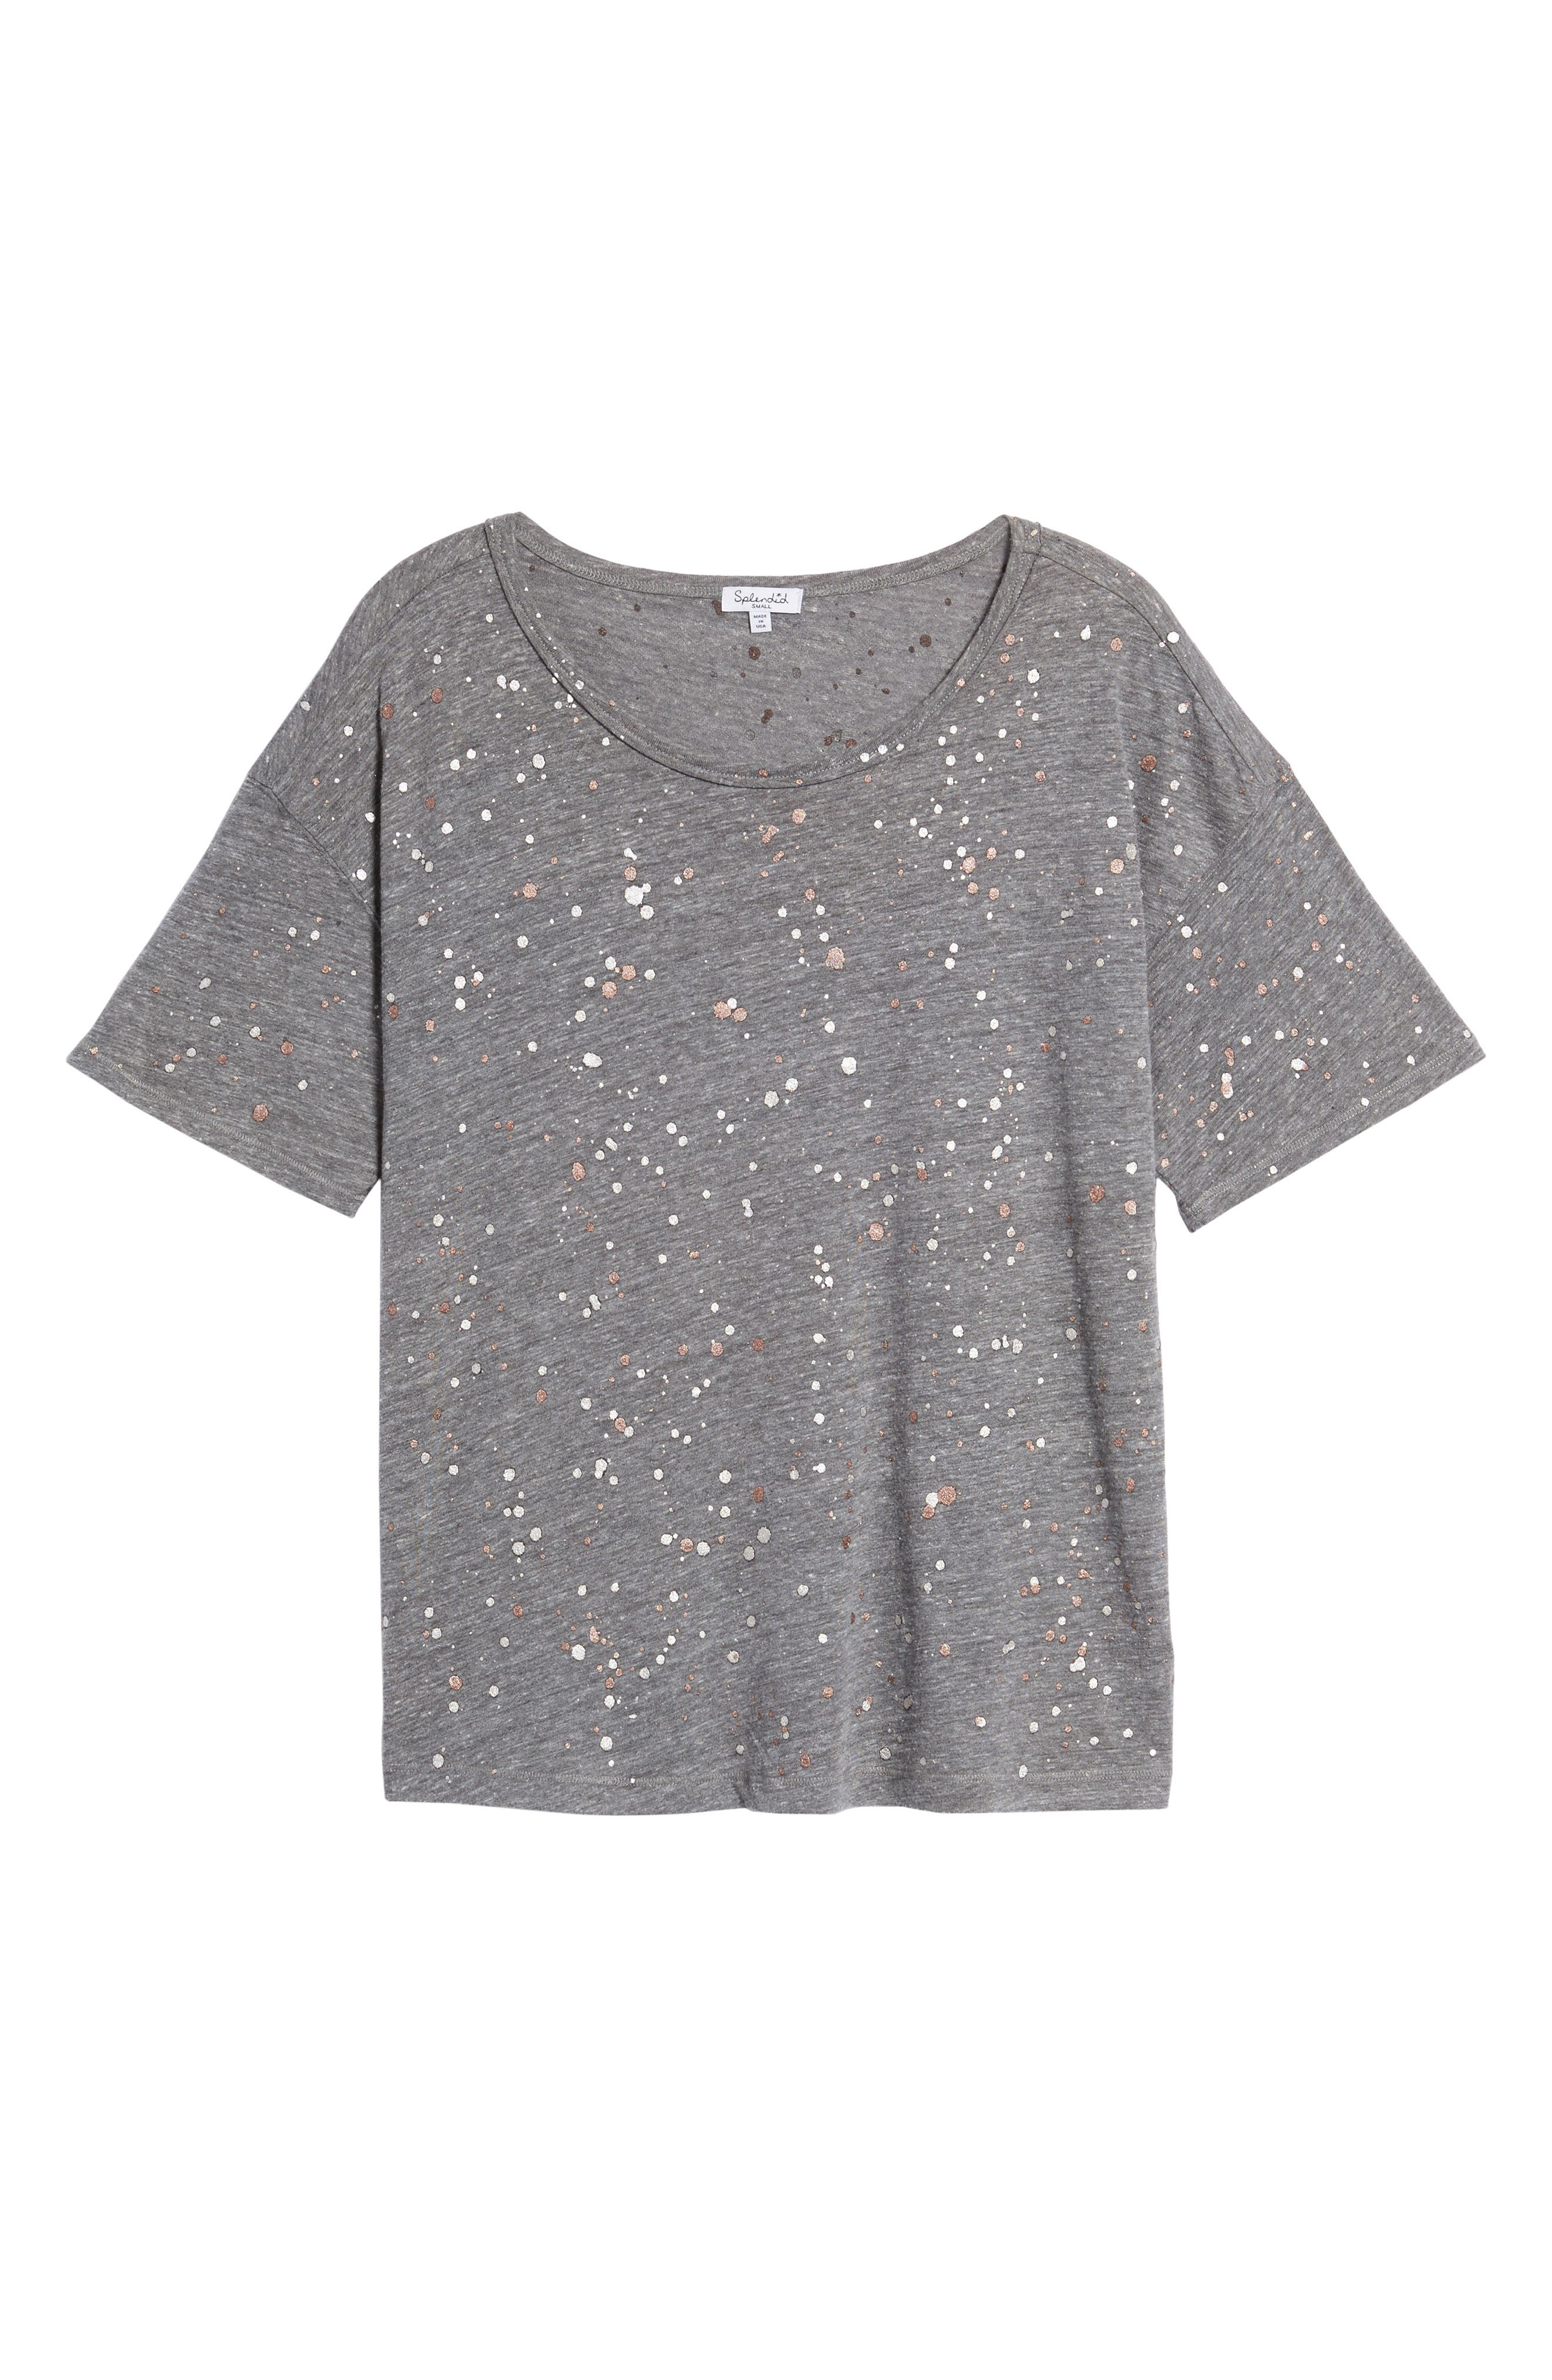 Metallic Splatter Tee,                             Alternate thumbnail 6, color,                             020